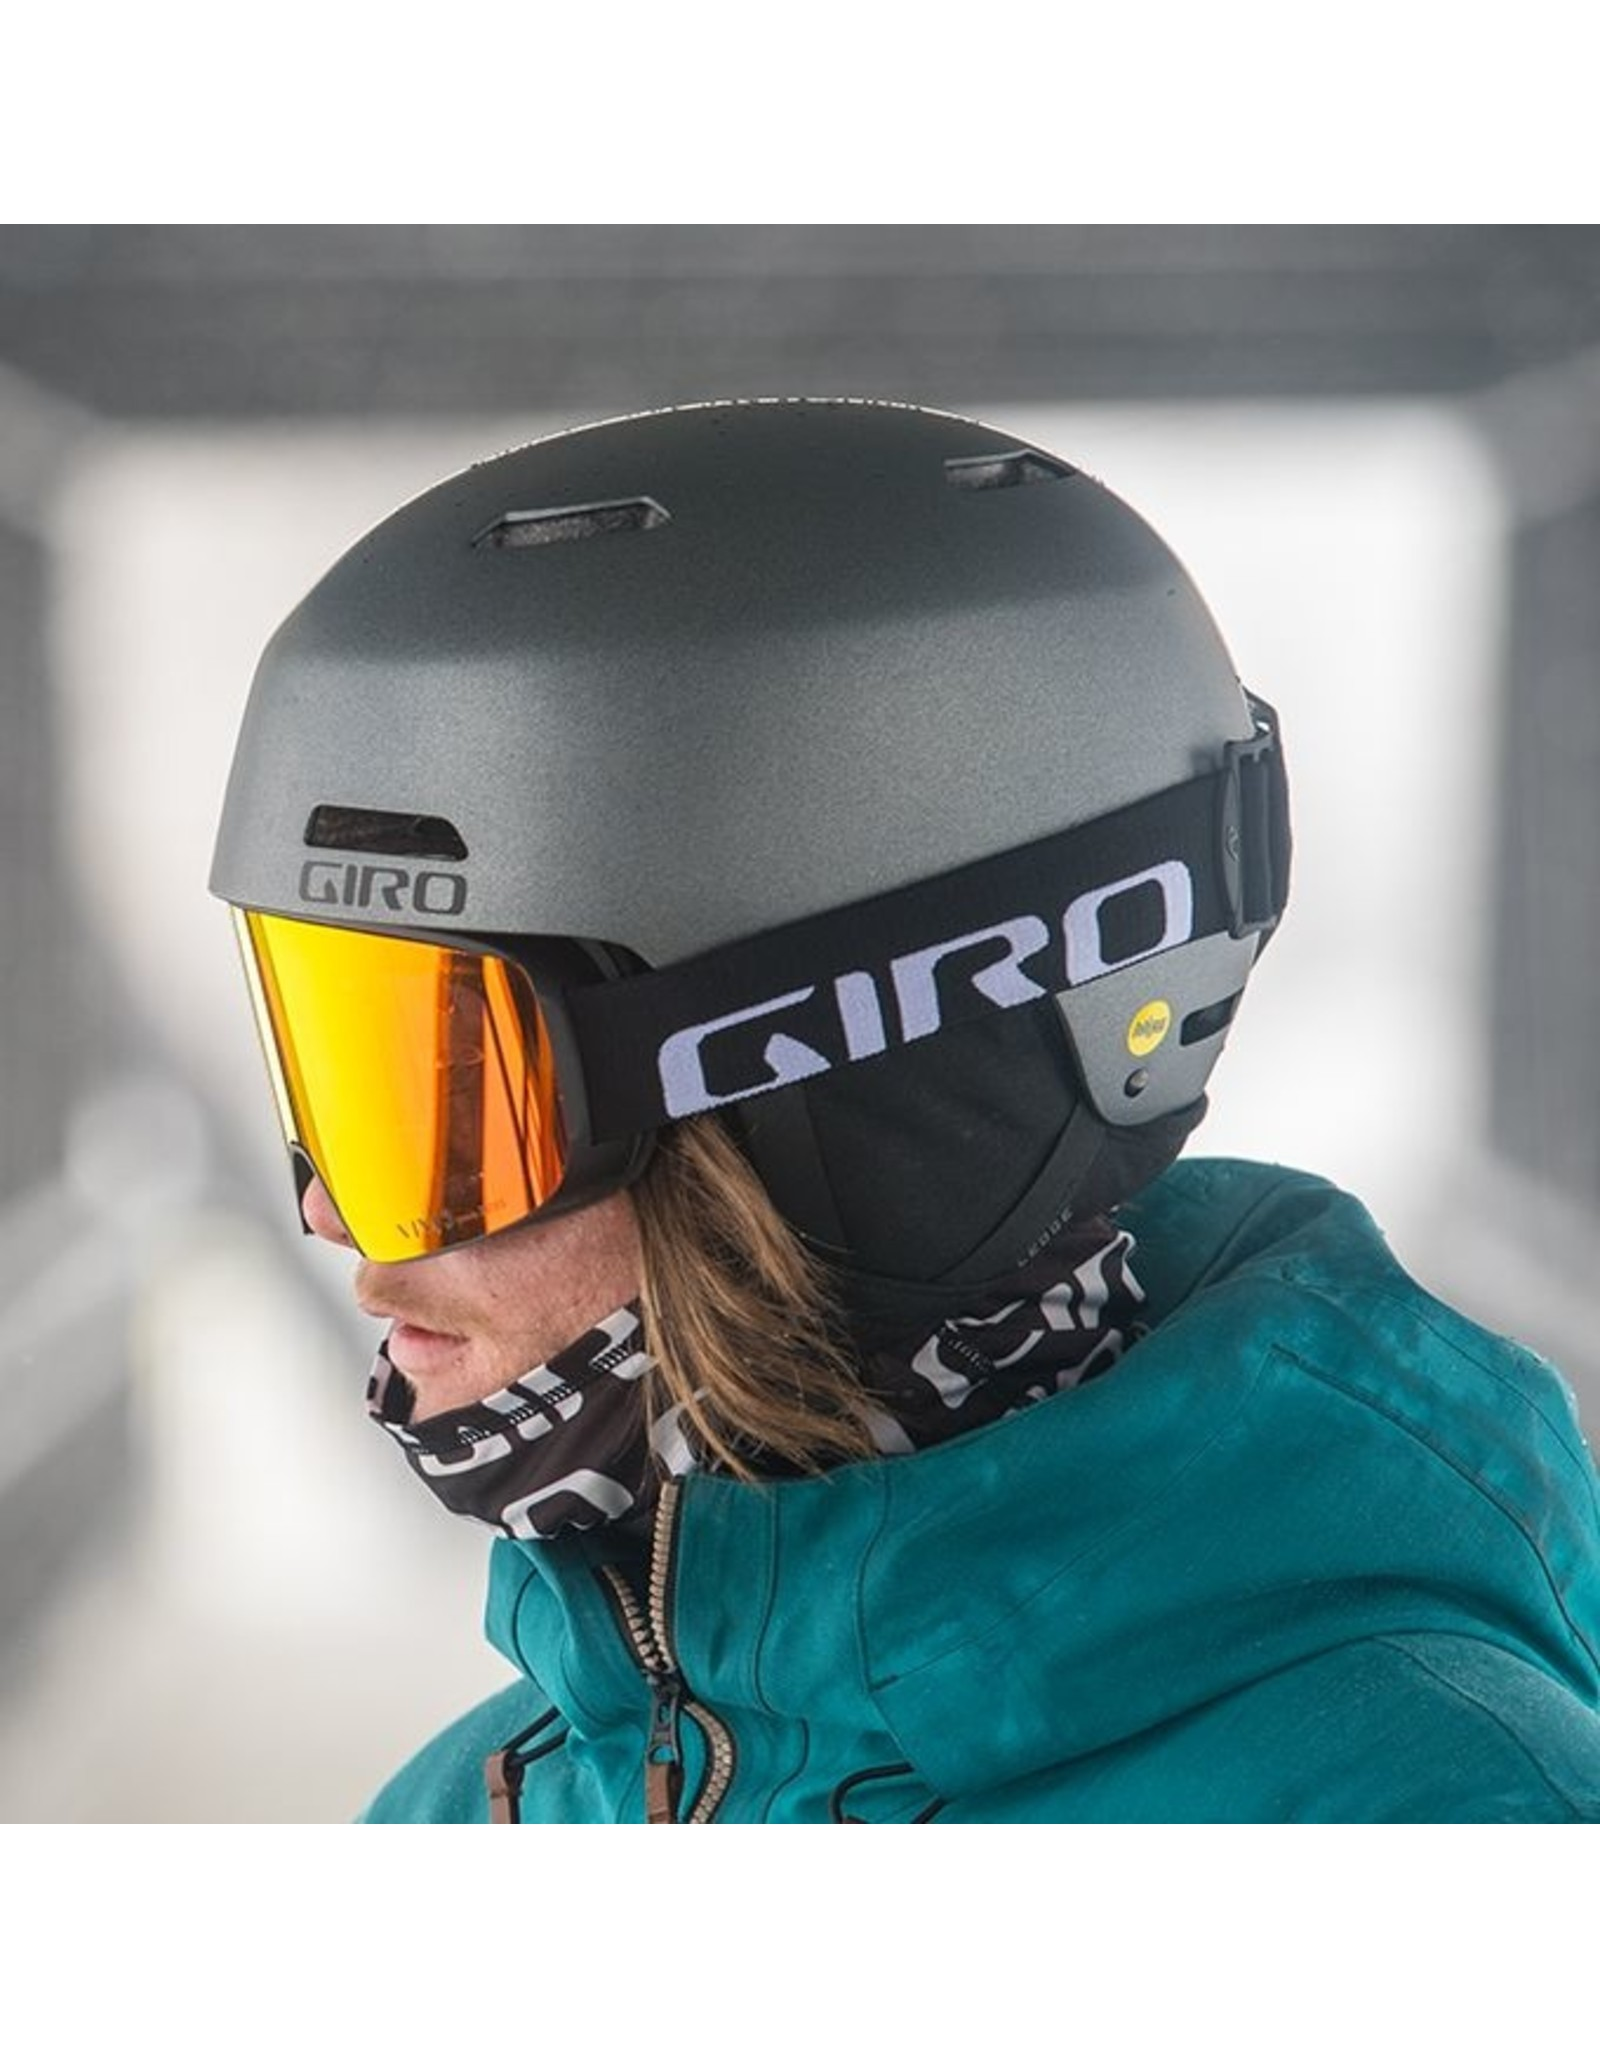 Giro GIRO LEDGE SKI HELMET BLACK 20